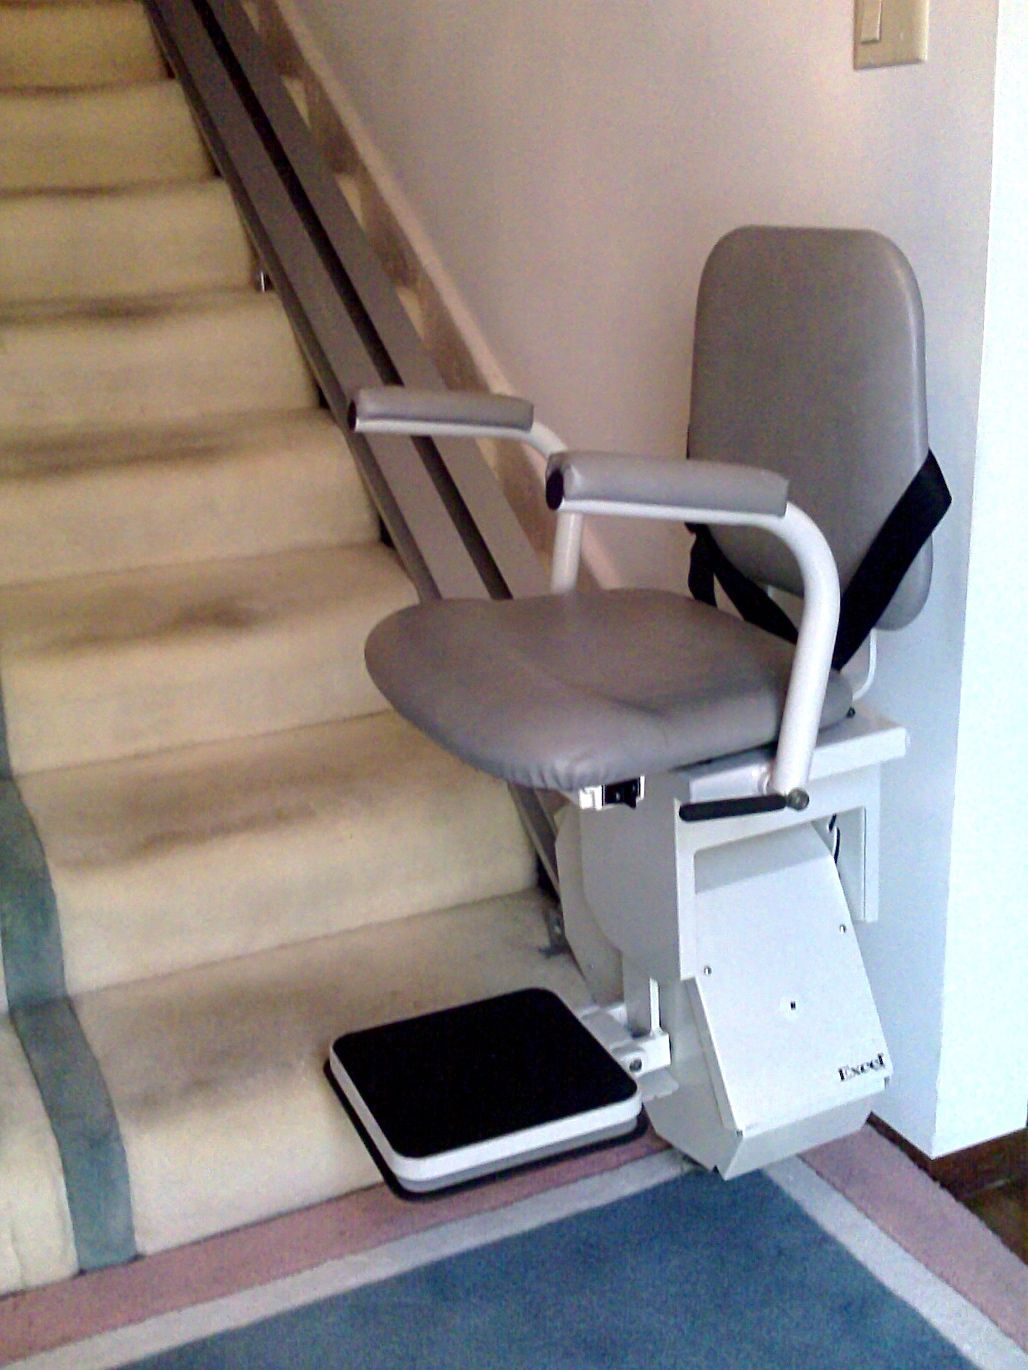 Pin on mobility equipment